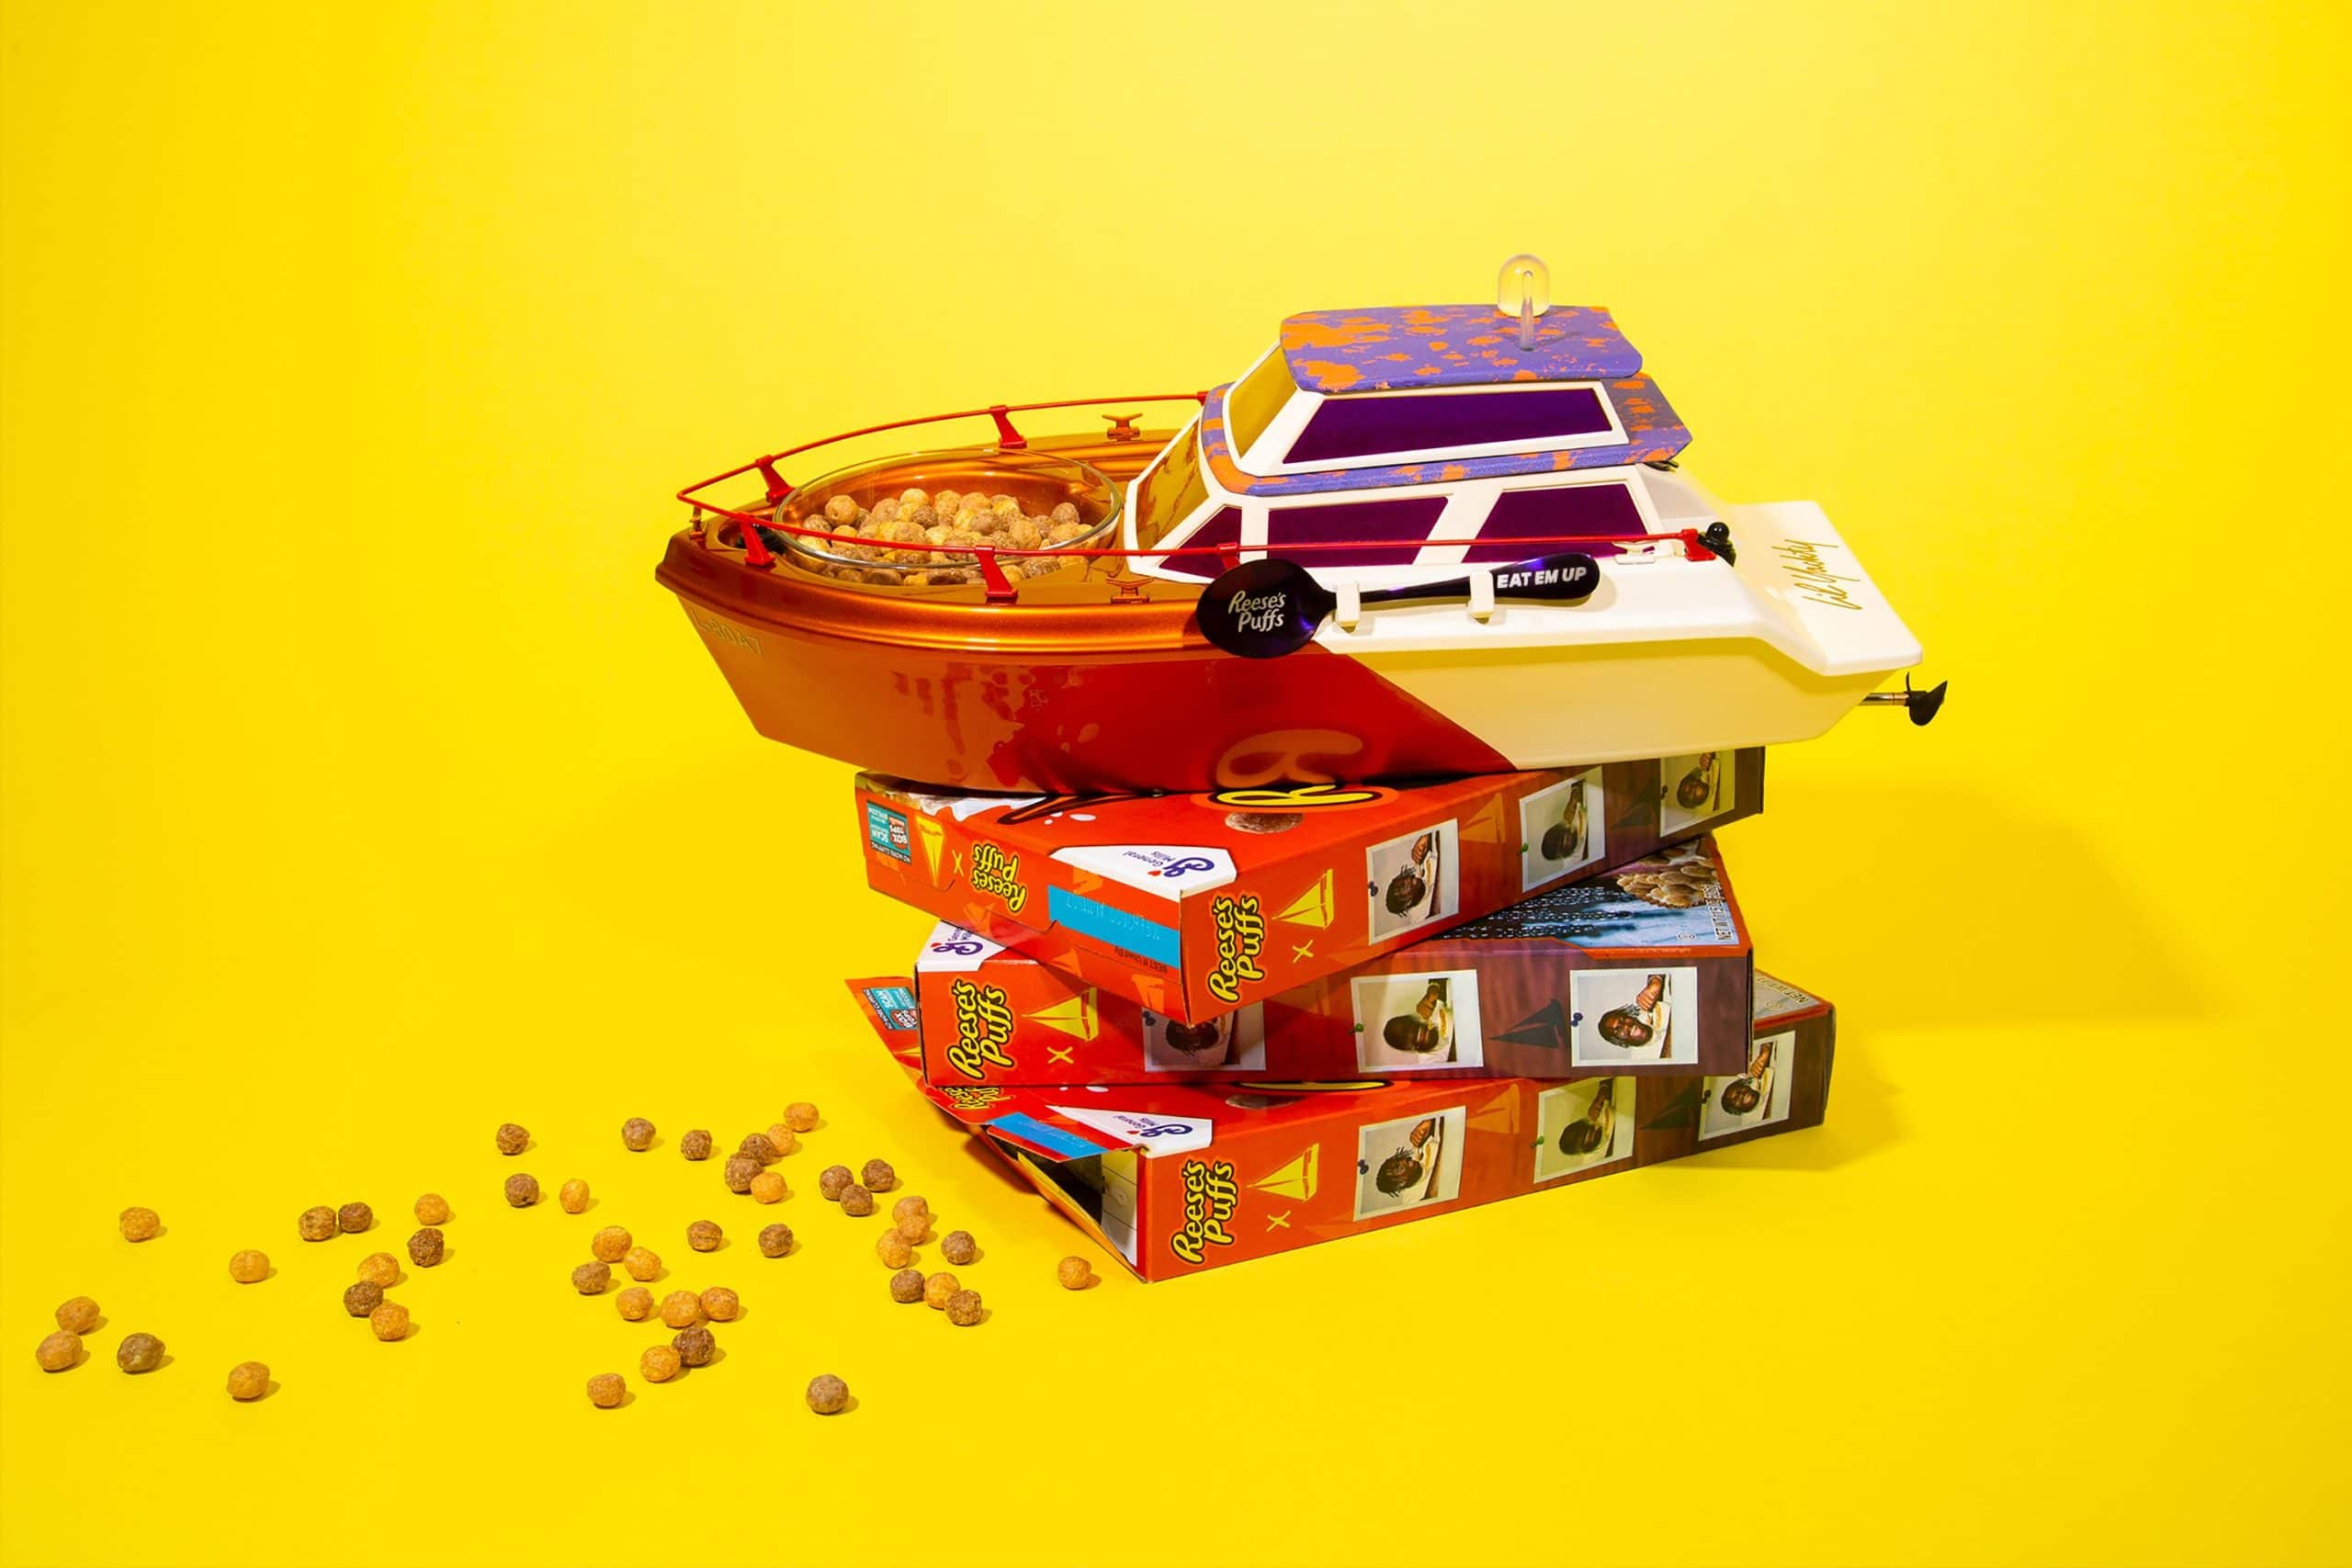 Lil Yachty x Reese's Puffs Lil Yacht takes cereal-eating experience to a new level 13